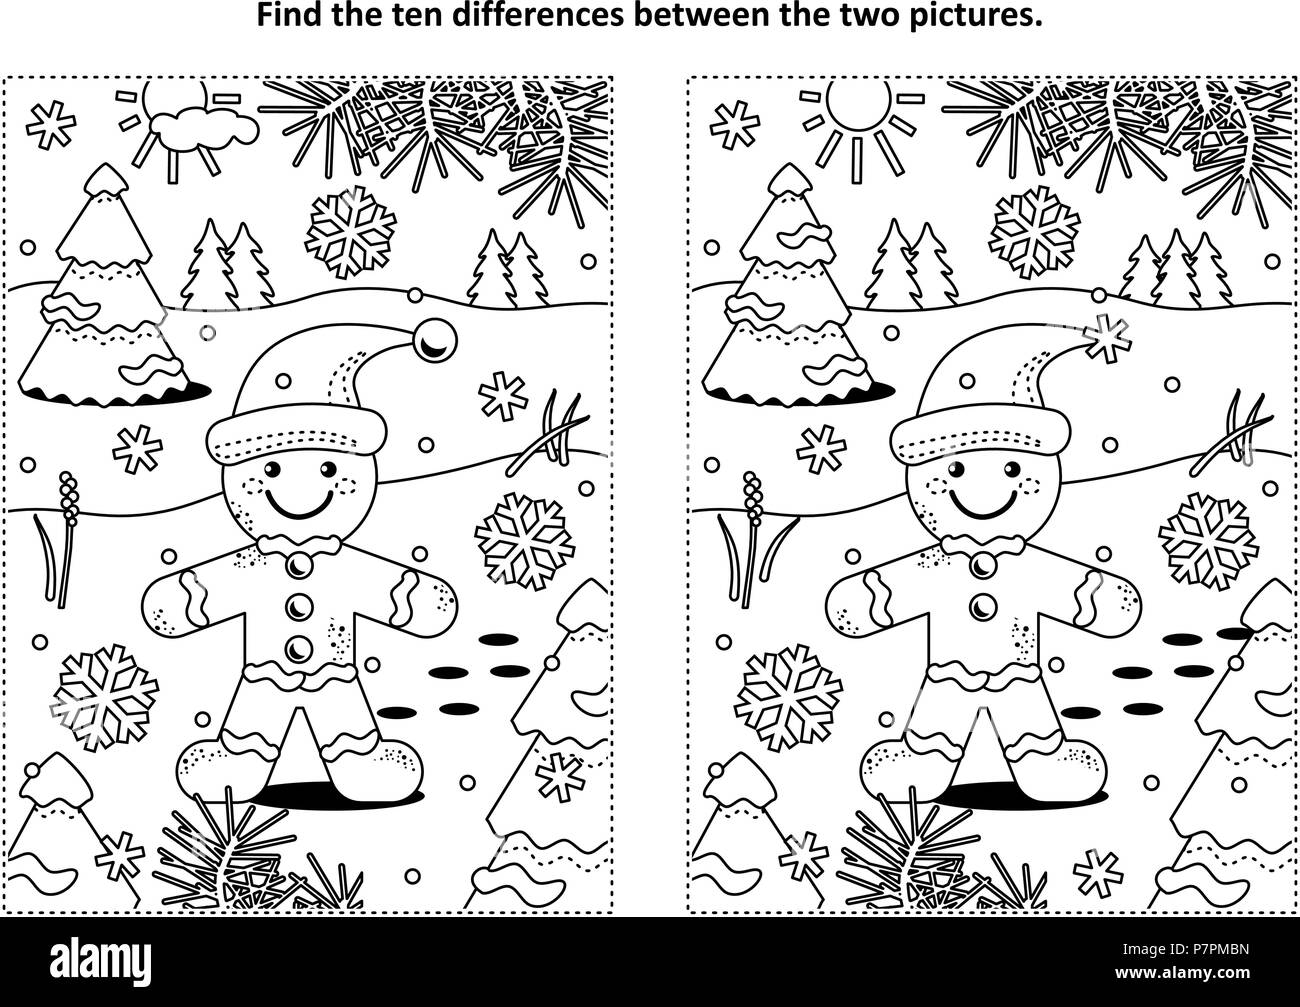 Winter Holidays Christmas Or New Year Themed Find The Ten